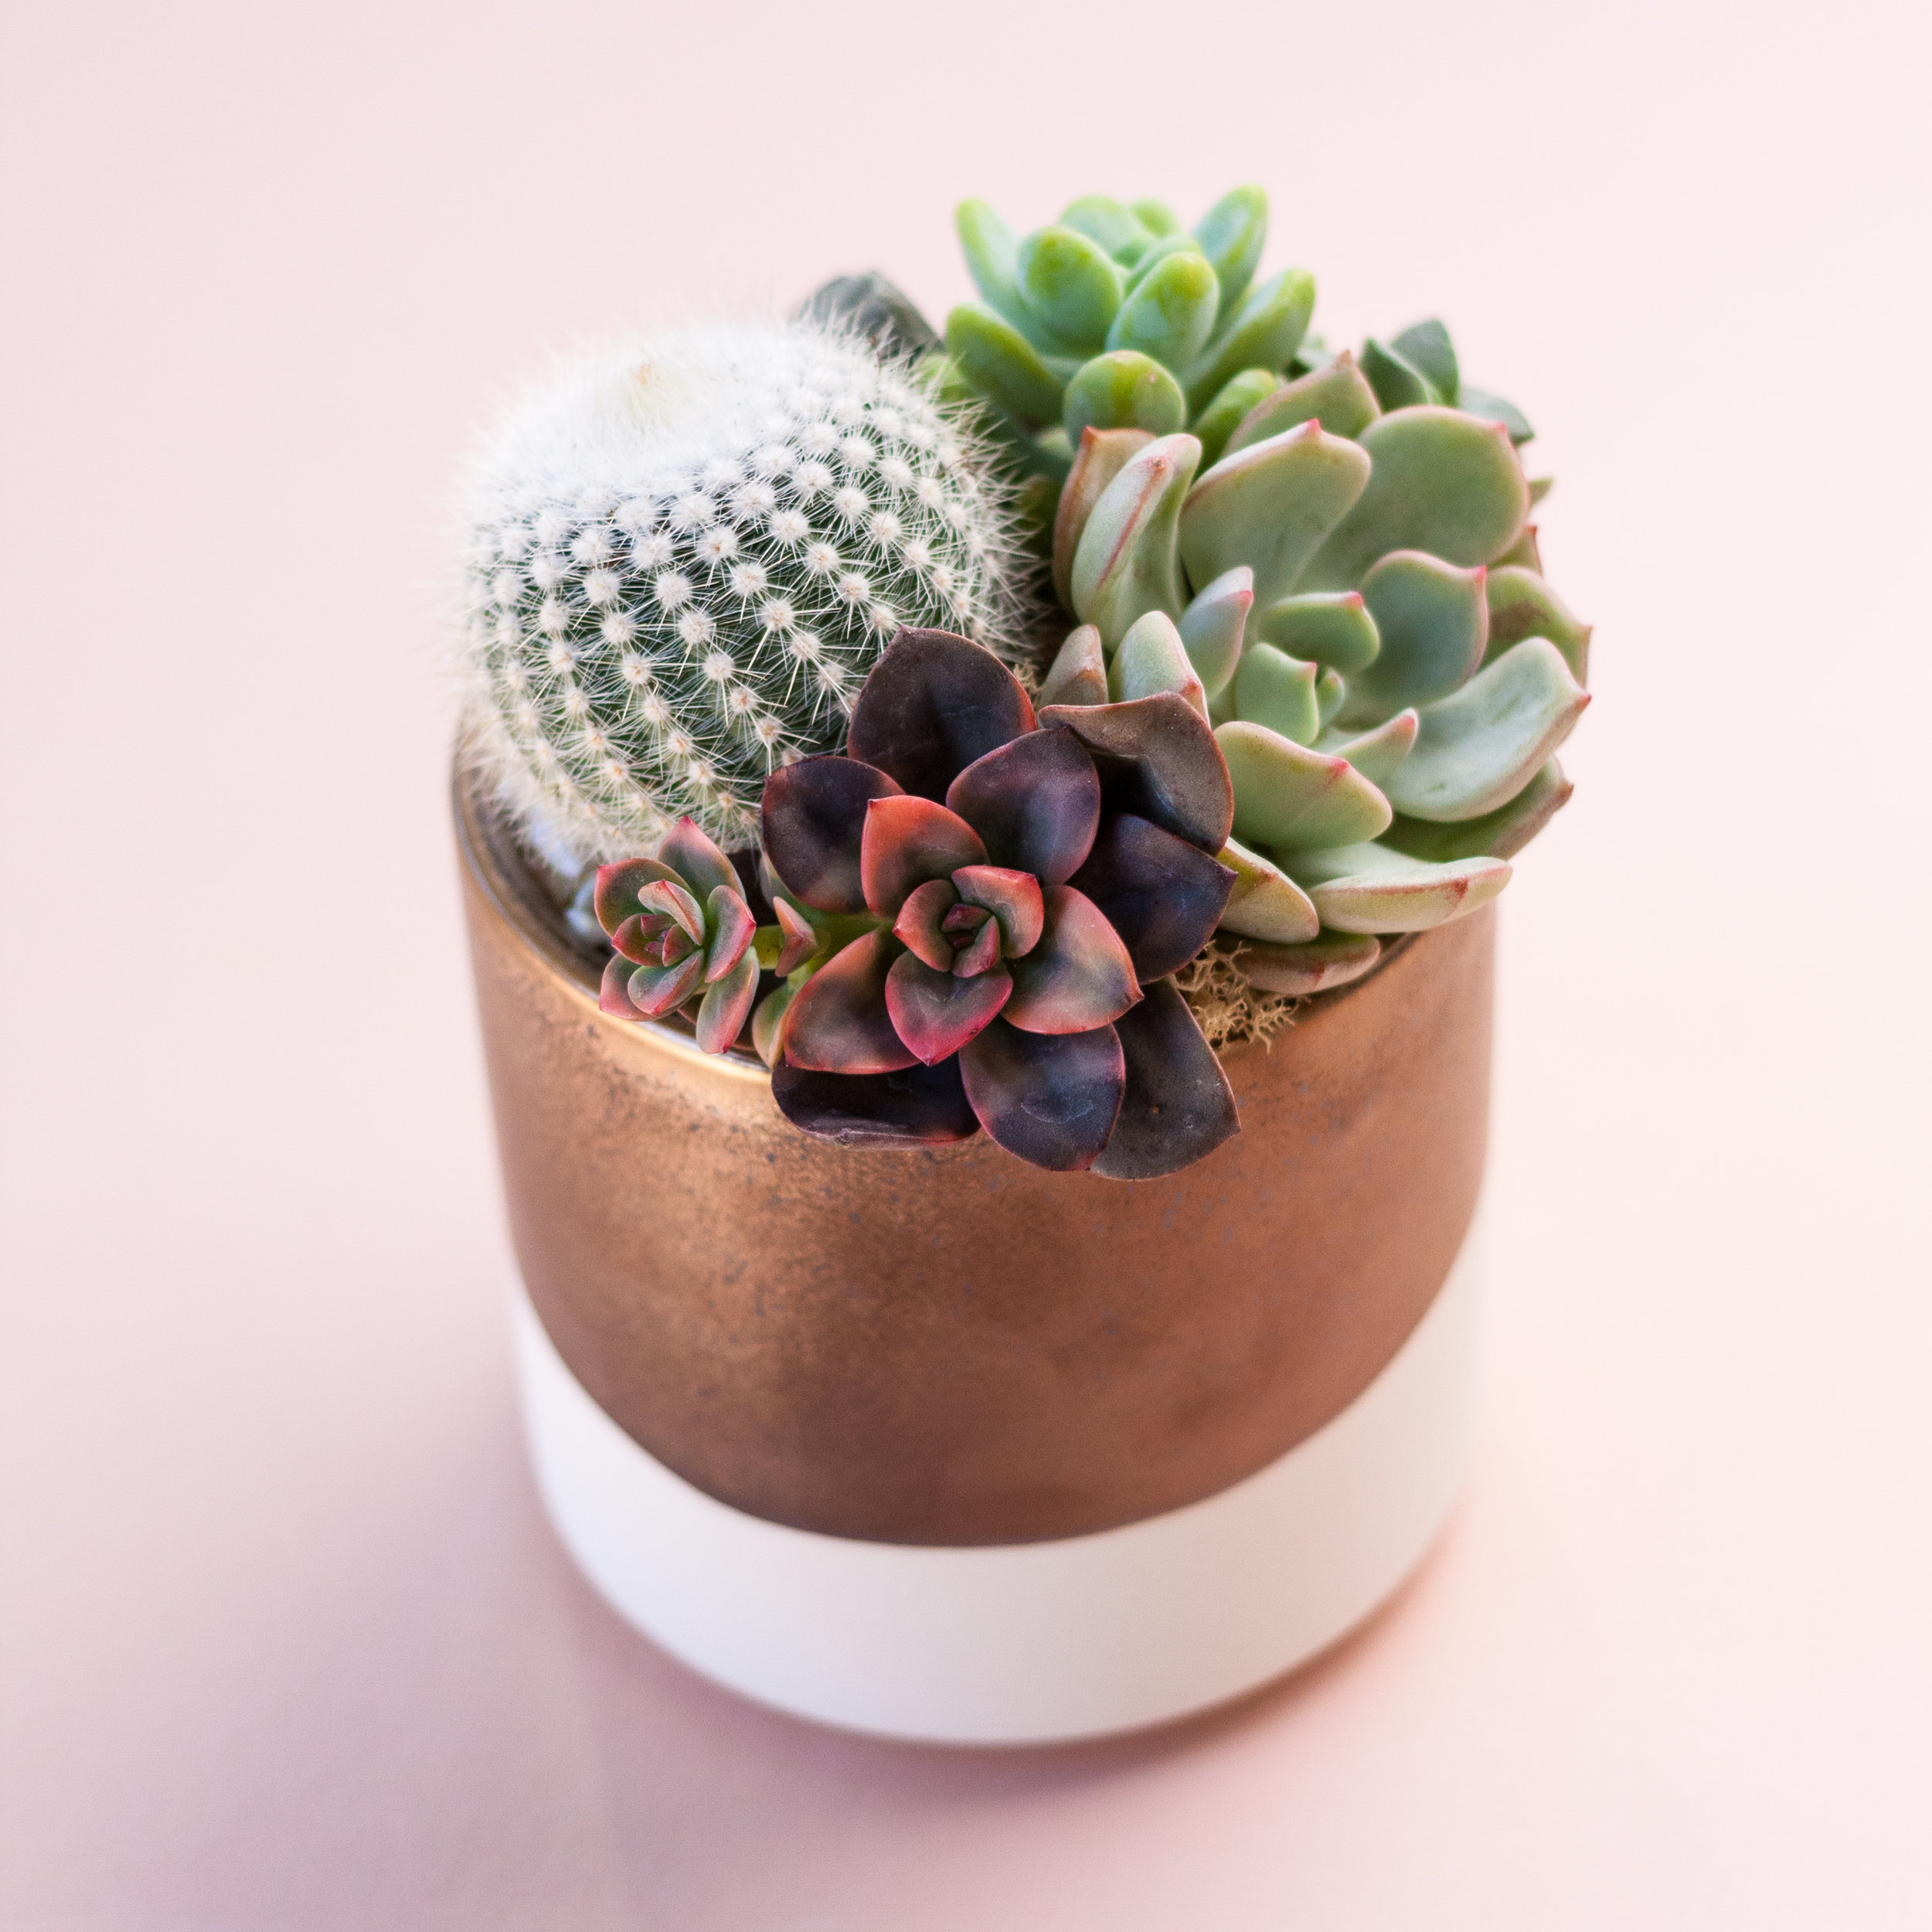 "4"" Modern Ceramic Planter $44 per person - 4"" modern ceramic planters with 4 succulentsGuests choose from a variety of beautiful planter options.photo above is just an example"